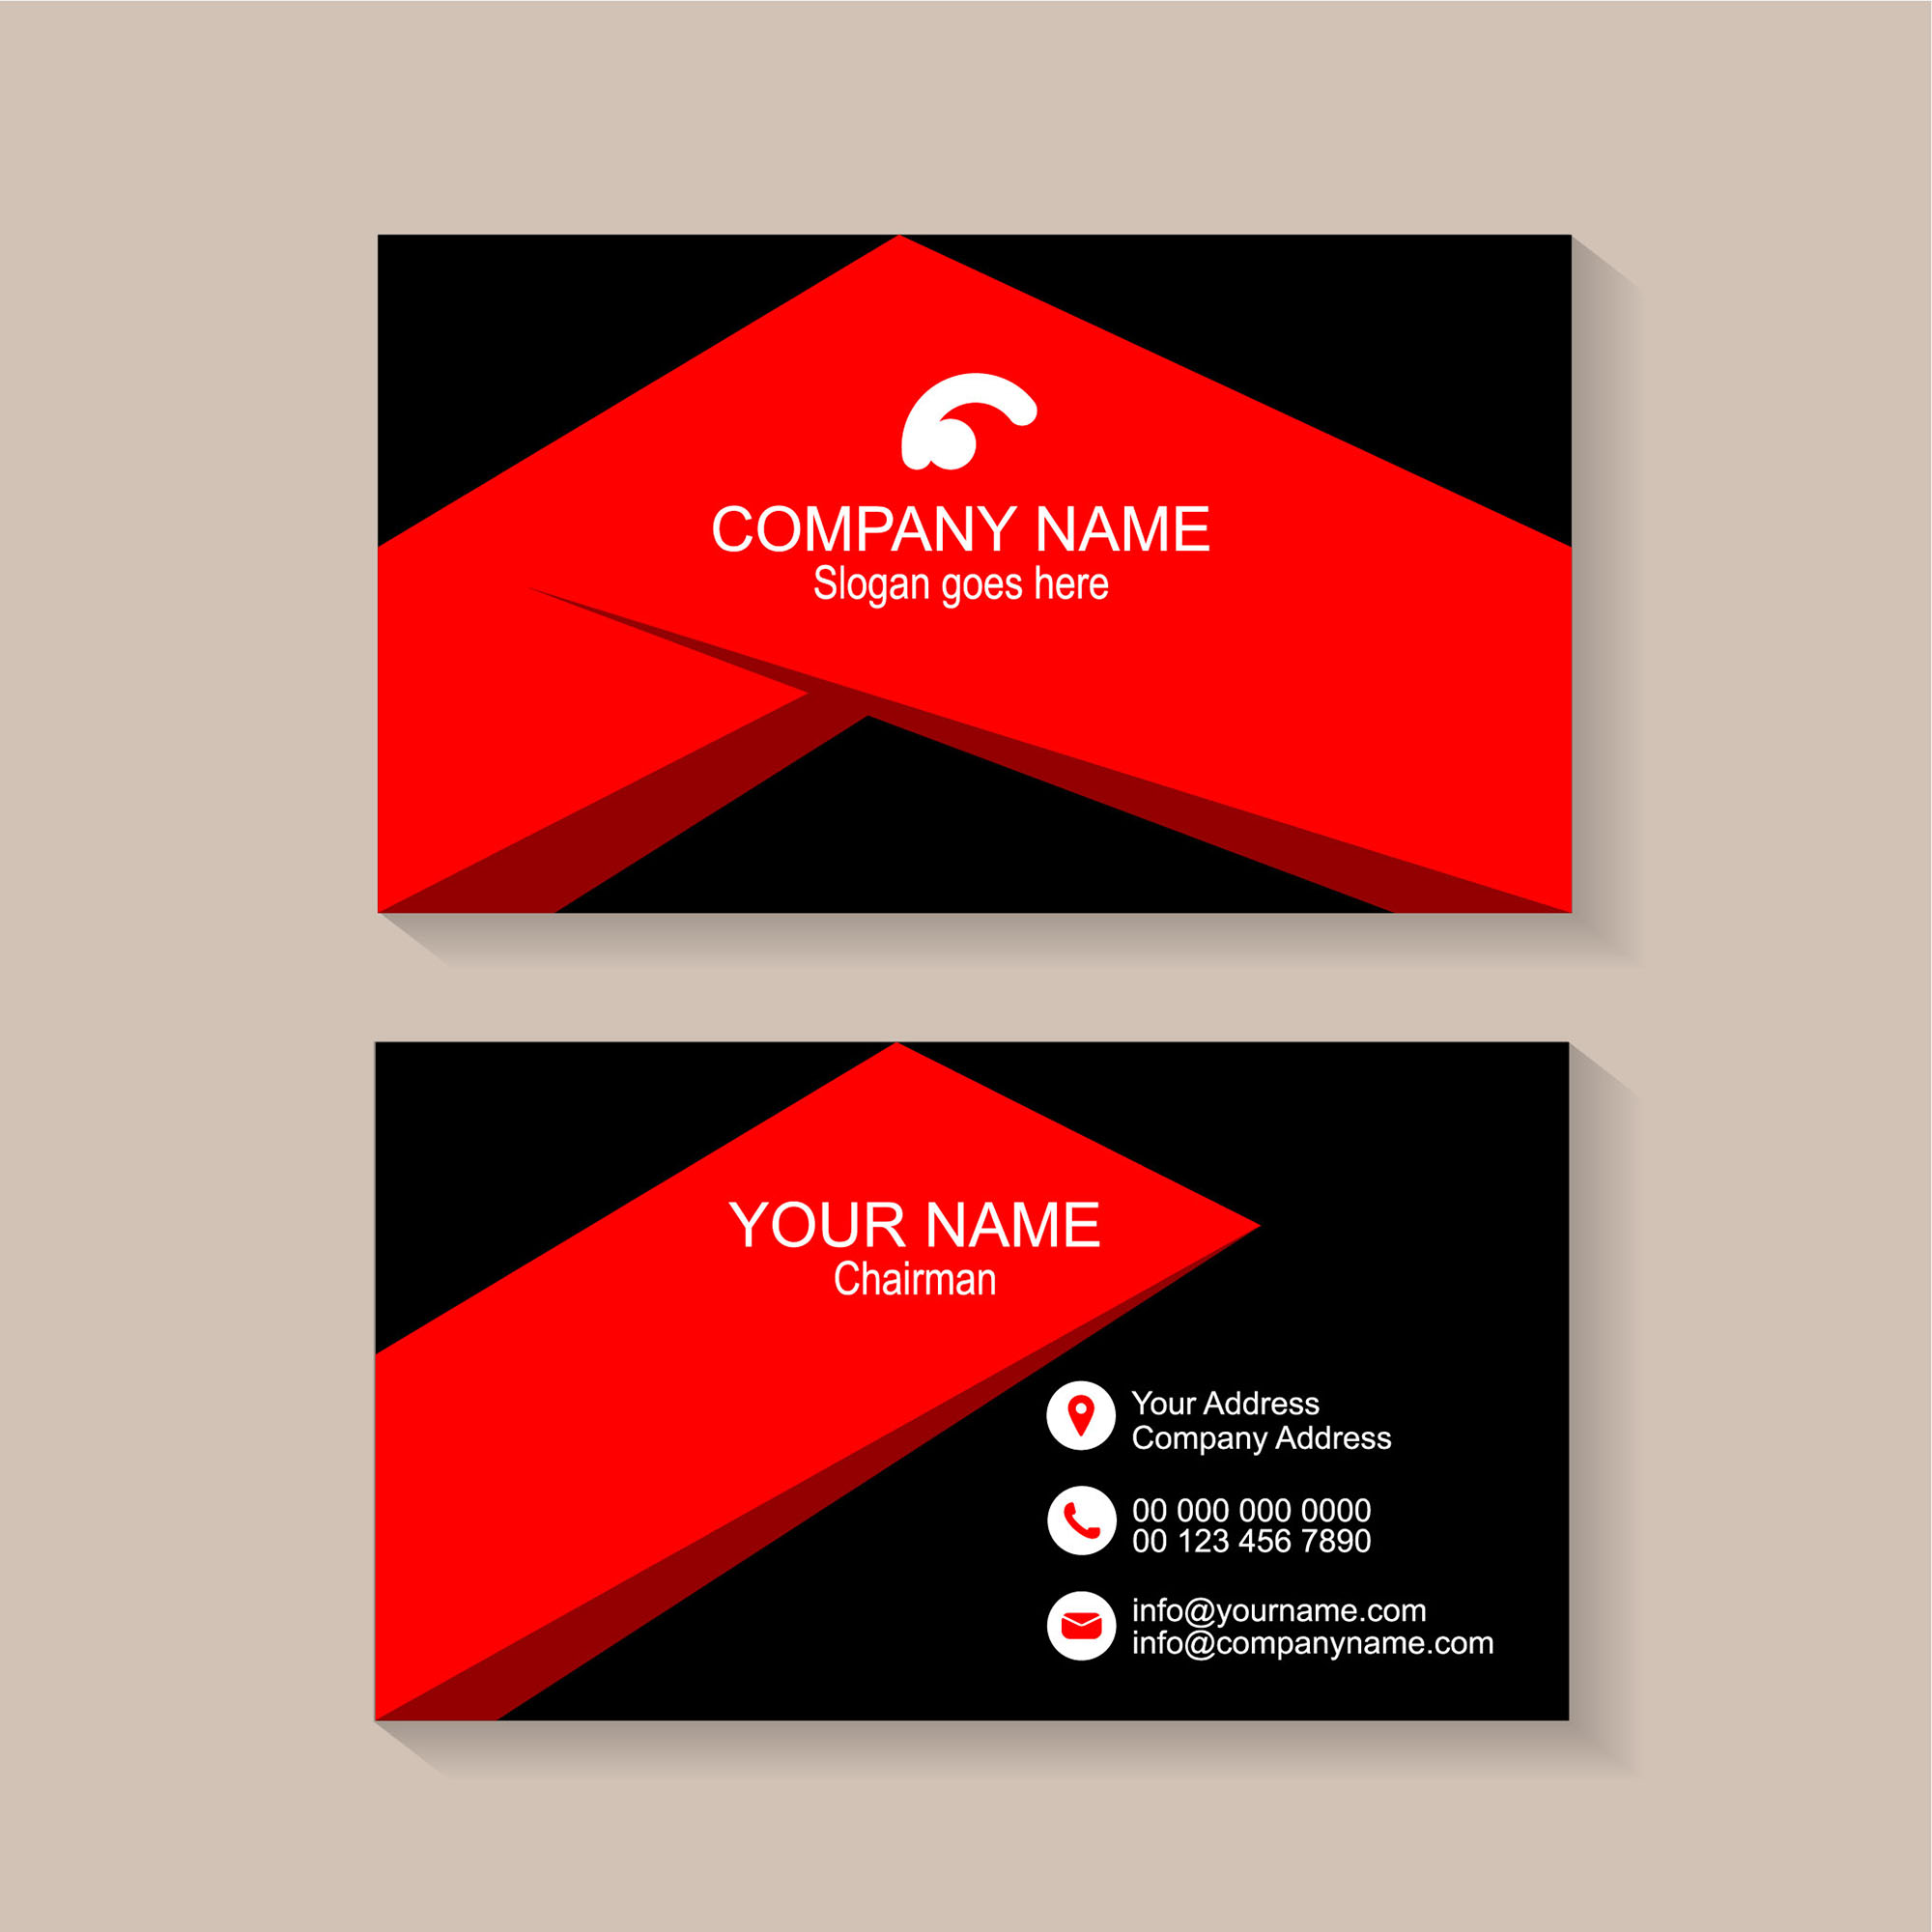 Business card template design free download wisxi business card business cards business card design business card template design templates modern business card design accmission Gallery